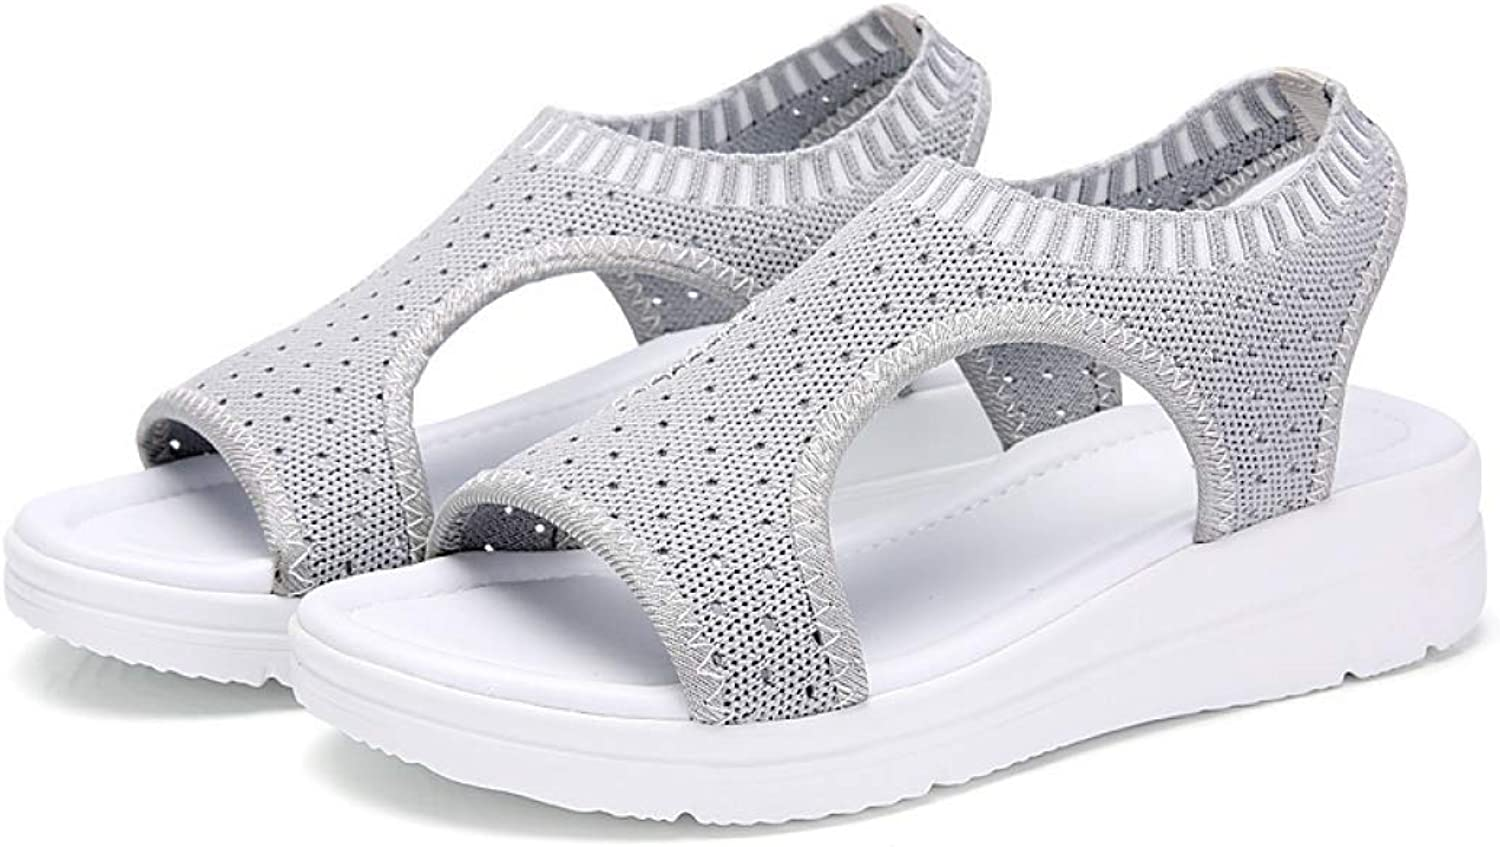 Hoxekle Woman's Summer Mesh Cloth Breathable Comfort Ladies Shopping Walking Platform Open Toe Sandals